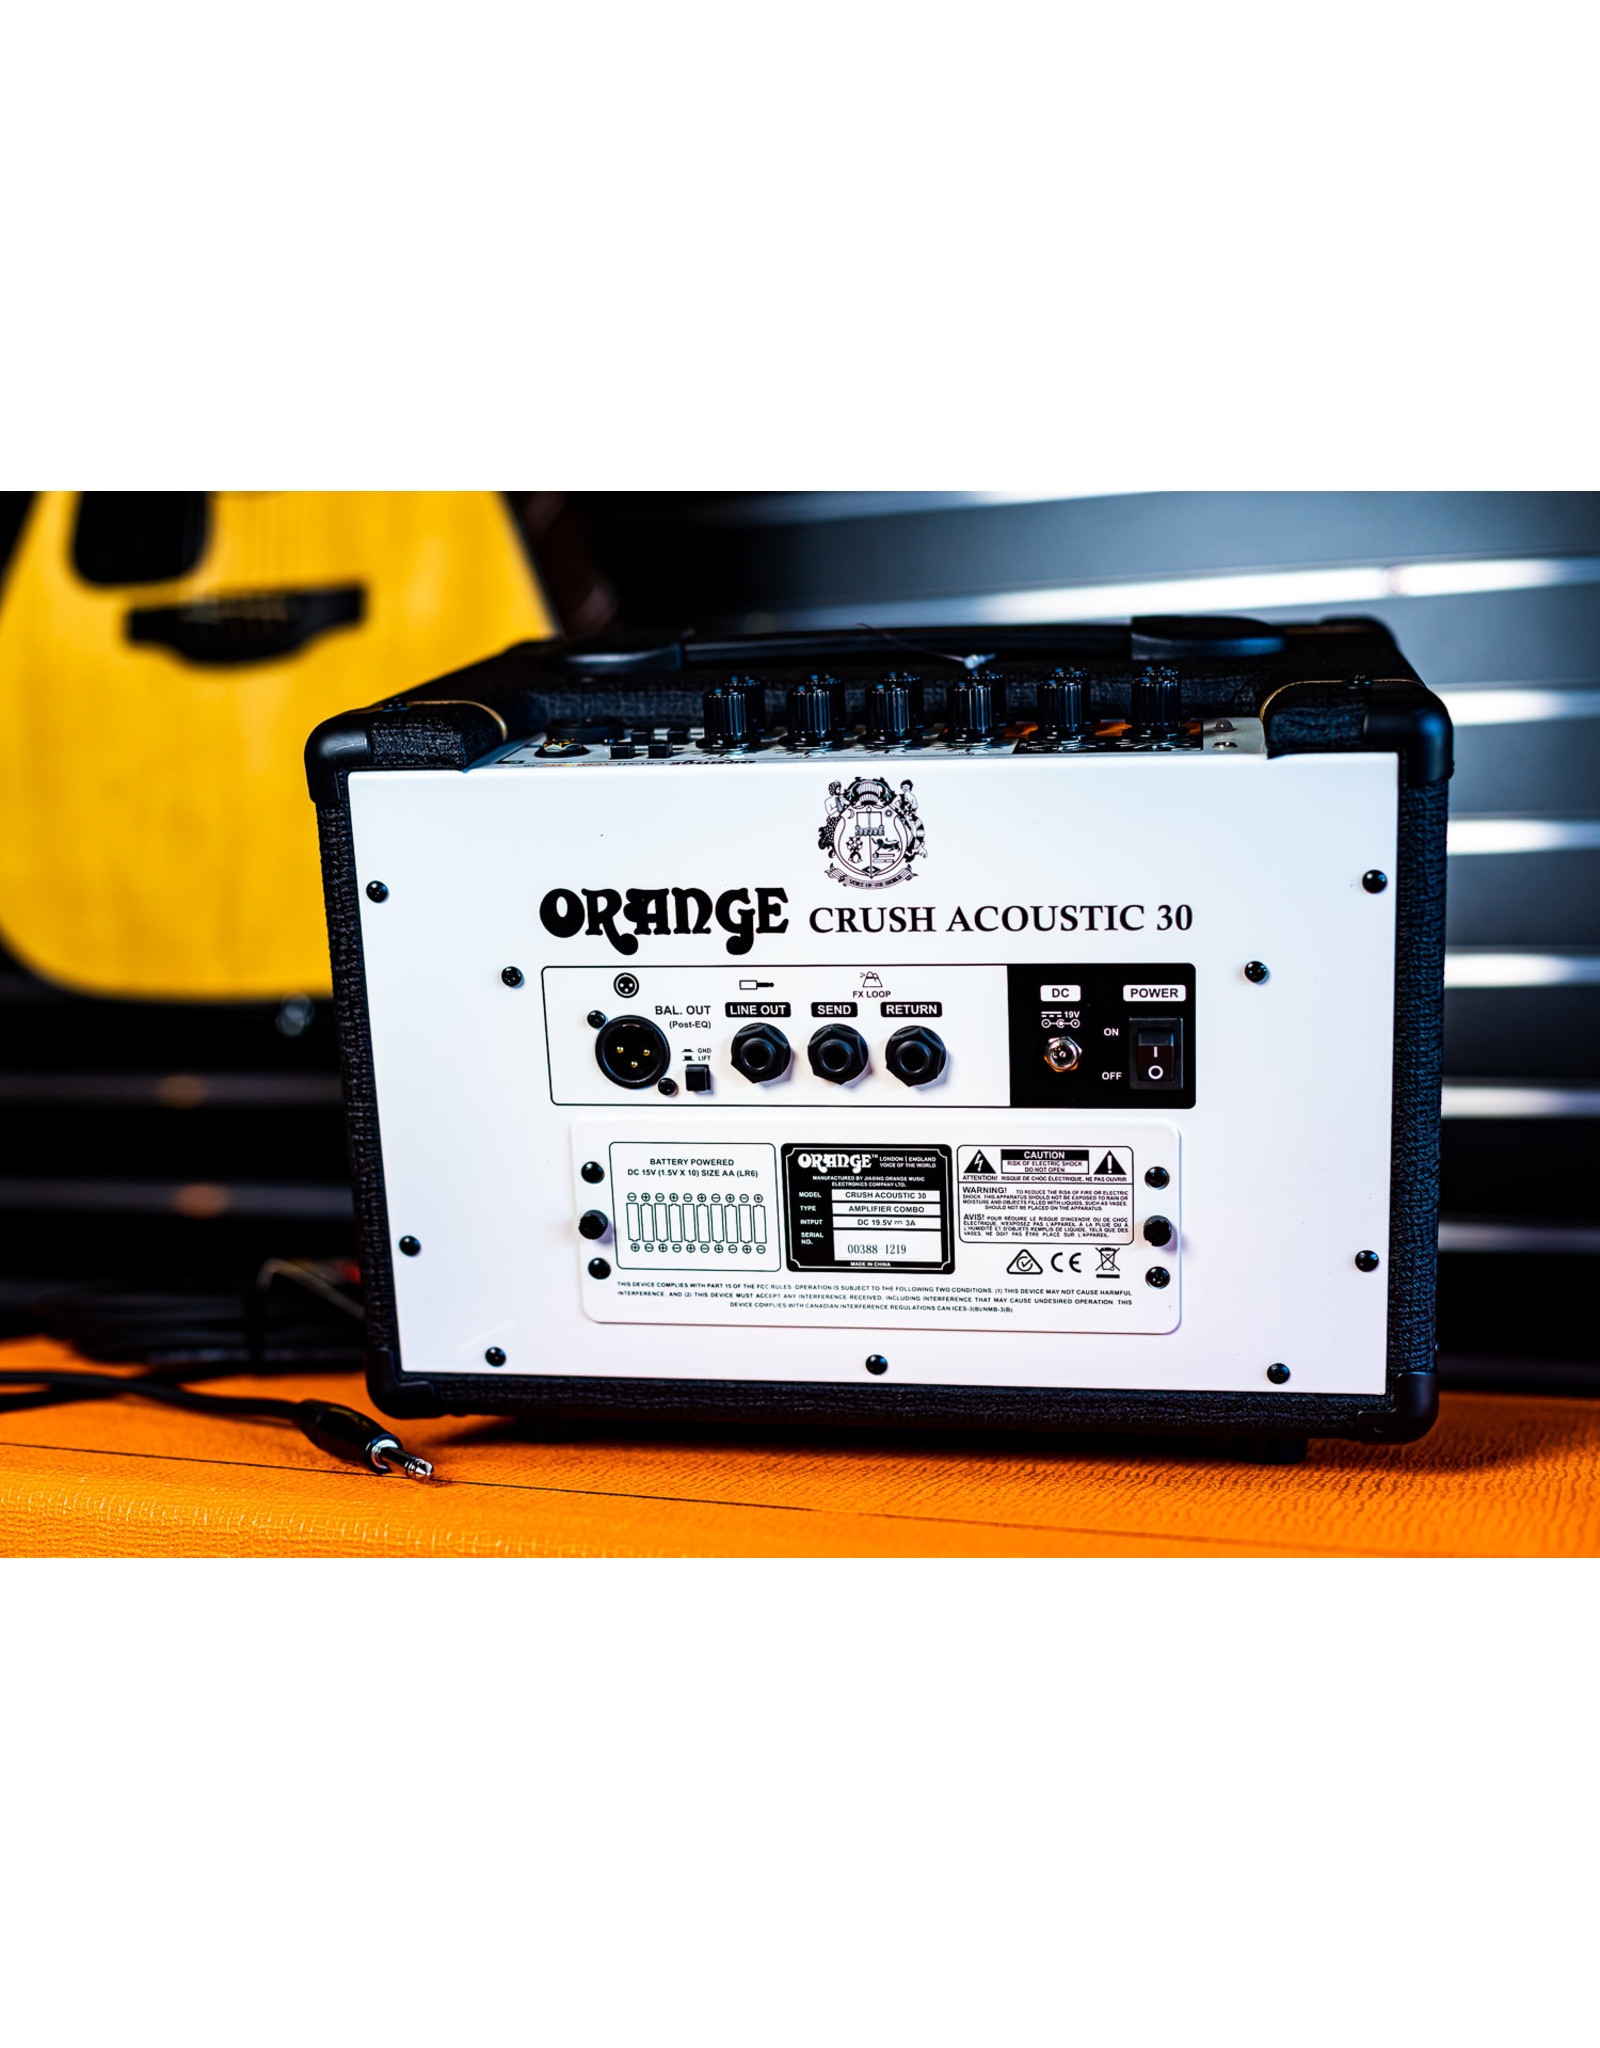 Orange Orange Crush 30 Watt Acoustic Amplifier - Black